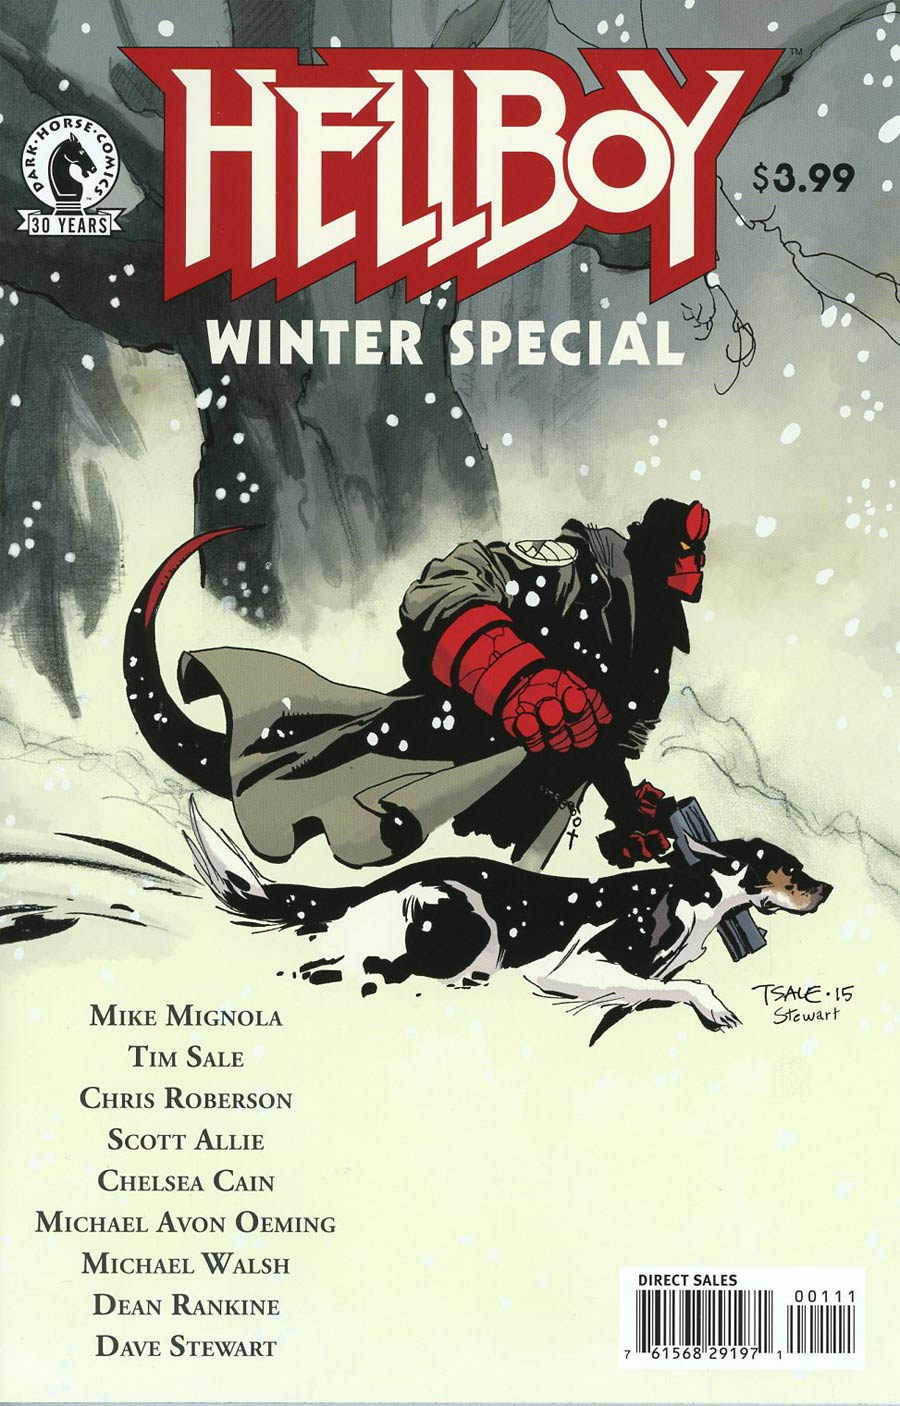 Hellboy Winter Special 2016 #1 Cover A Regular Tim Sale Cover